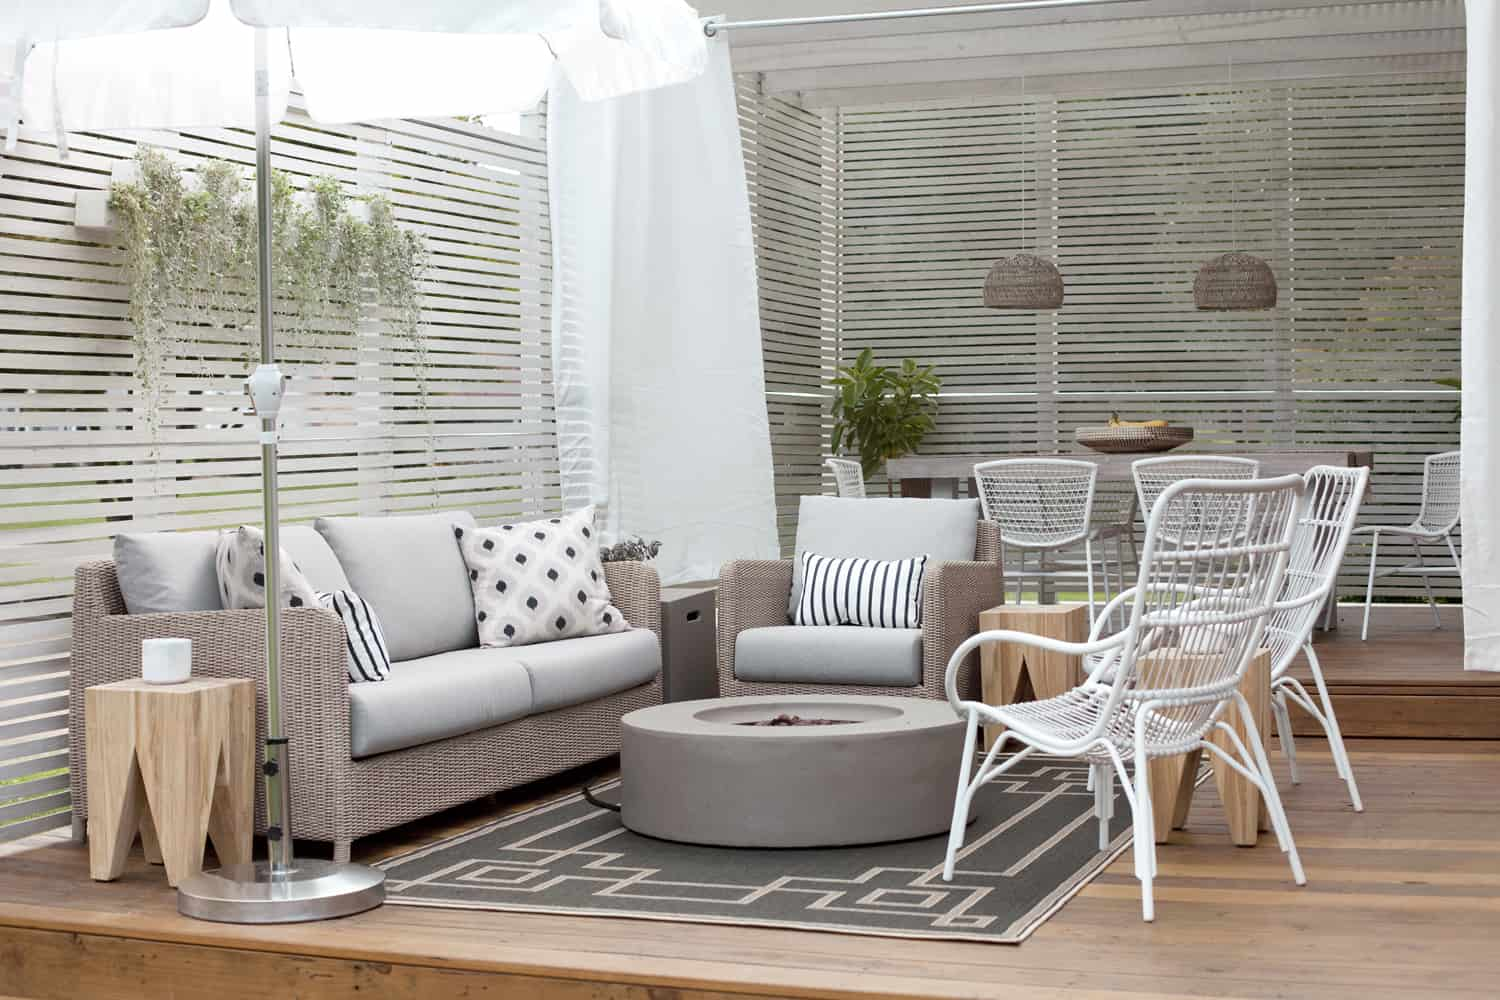 outdoor living space after adding accessories